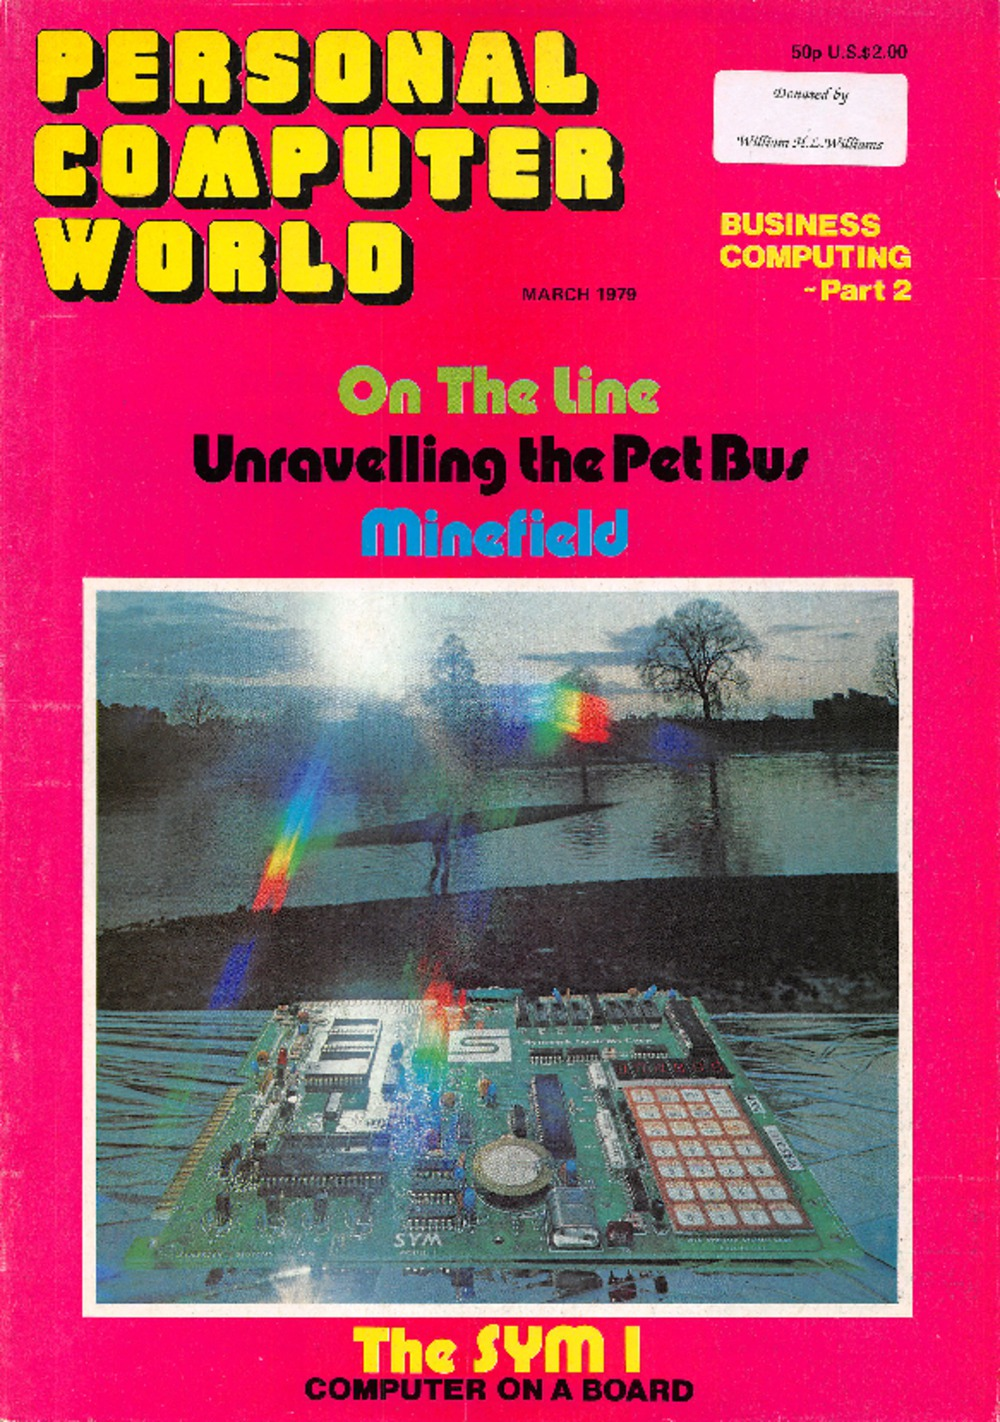 Article: Personal Computer World - March 1979